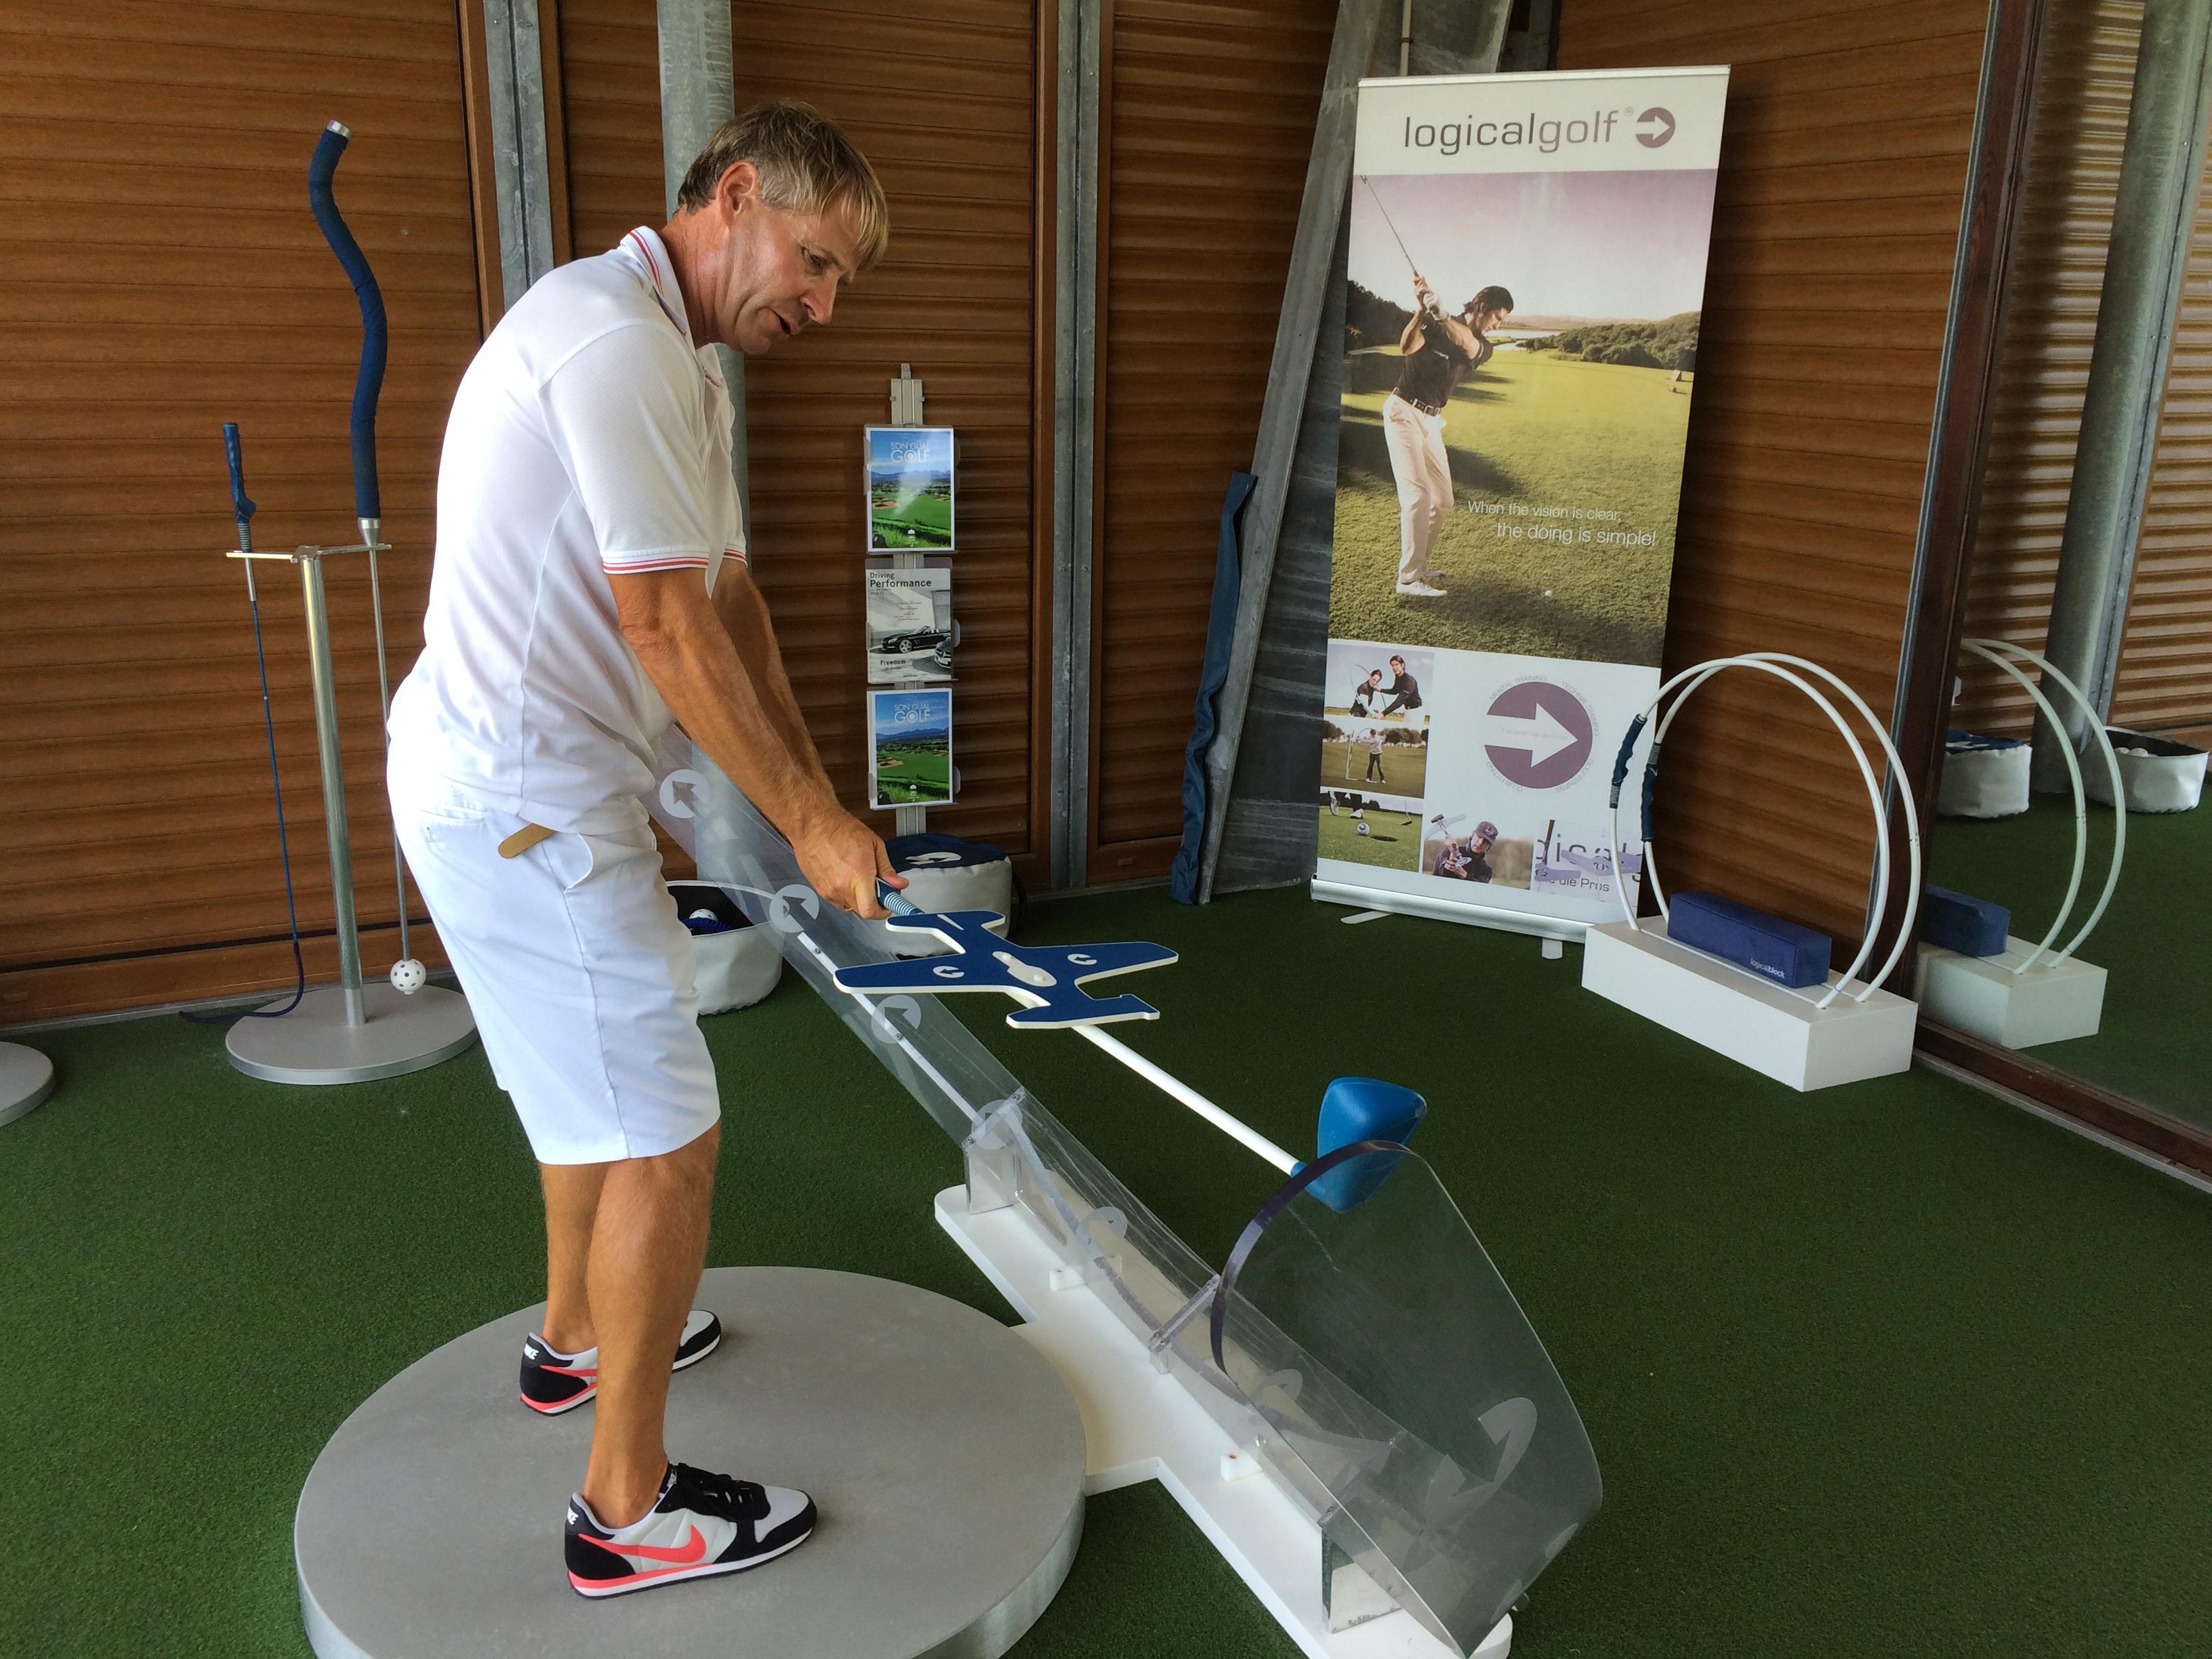 Son Gual pro Tim Holroyd explains the backswing in his Logicalgolf centre